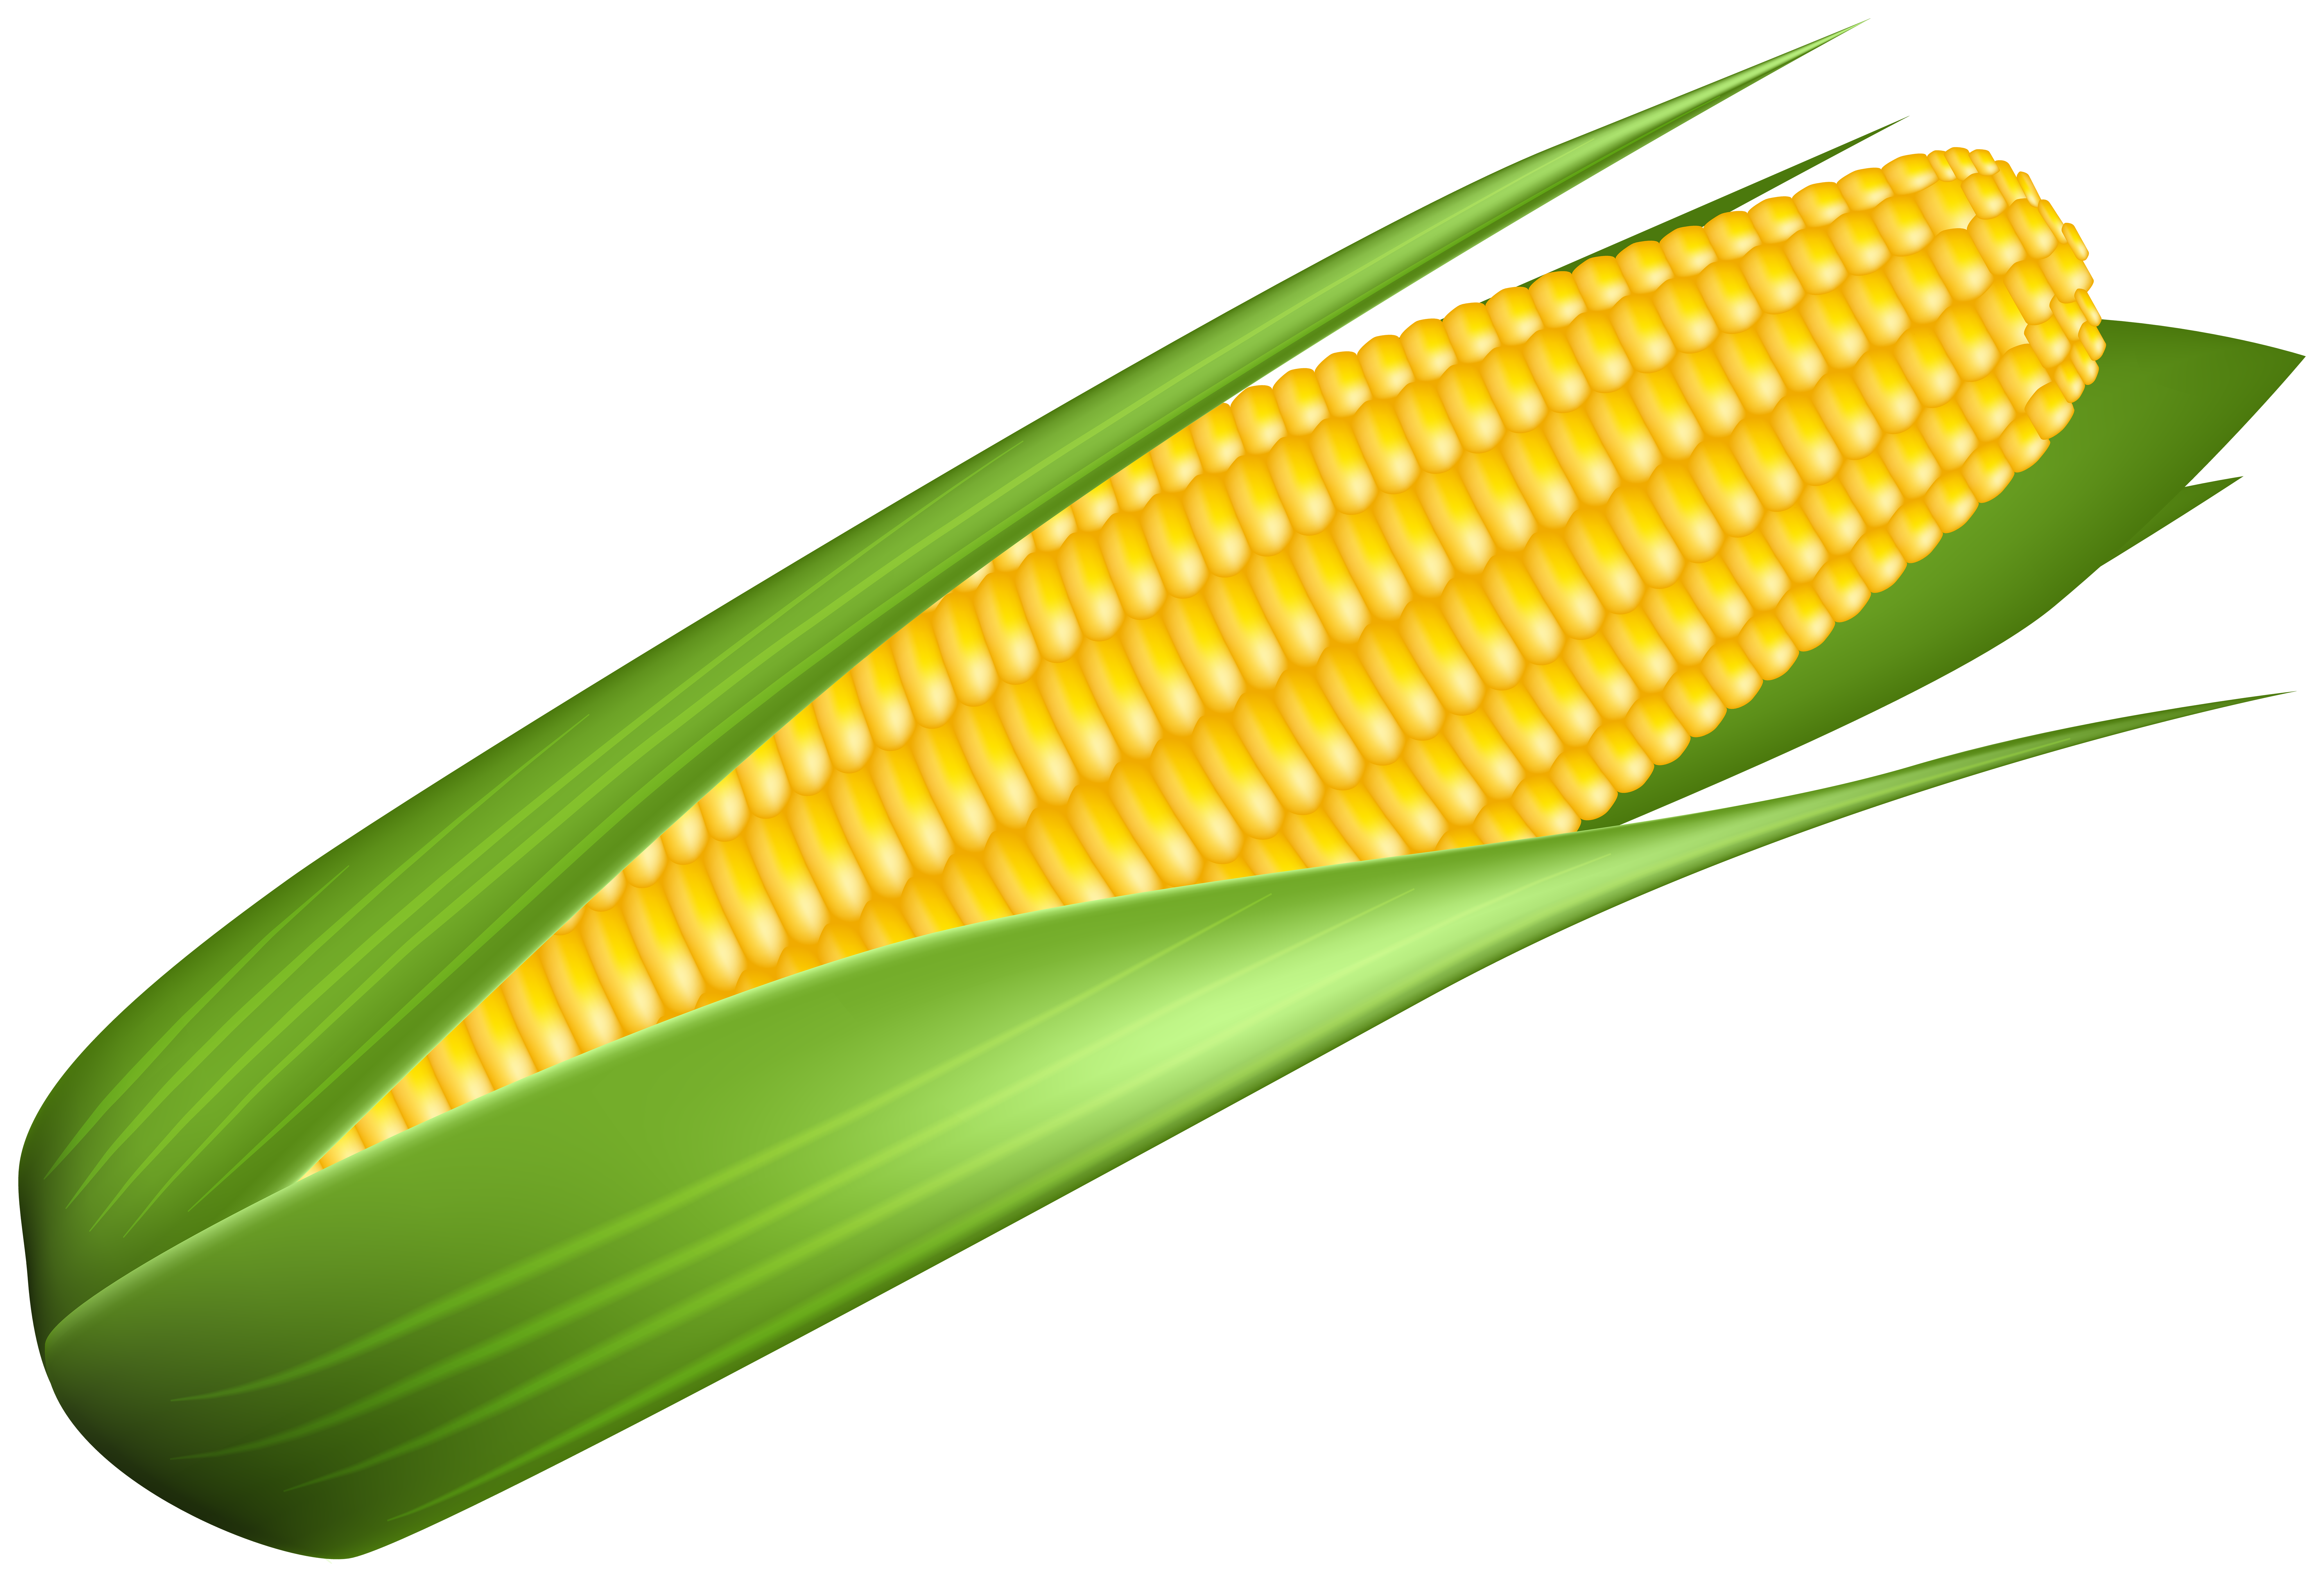 picture black and white stock Corn clipart. Transparent image gallery yopriceville.